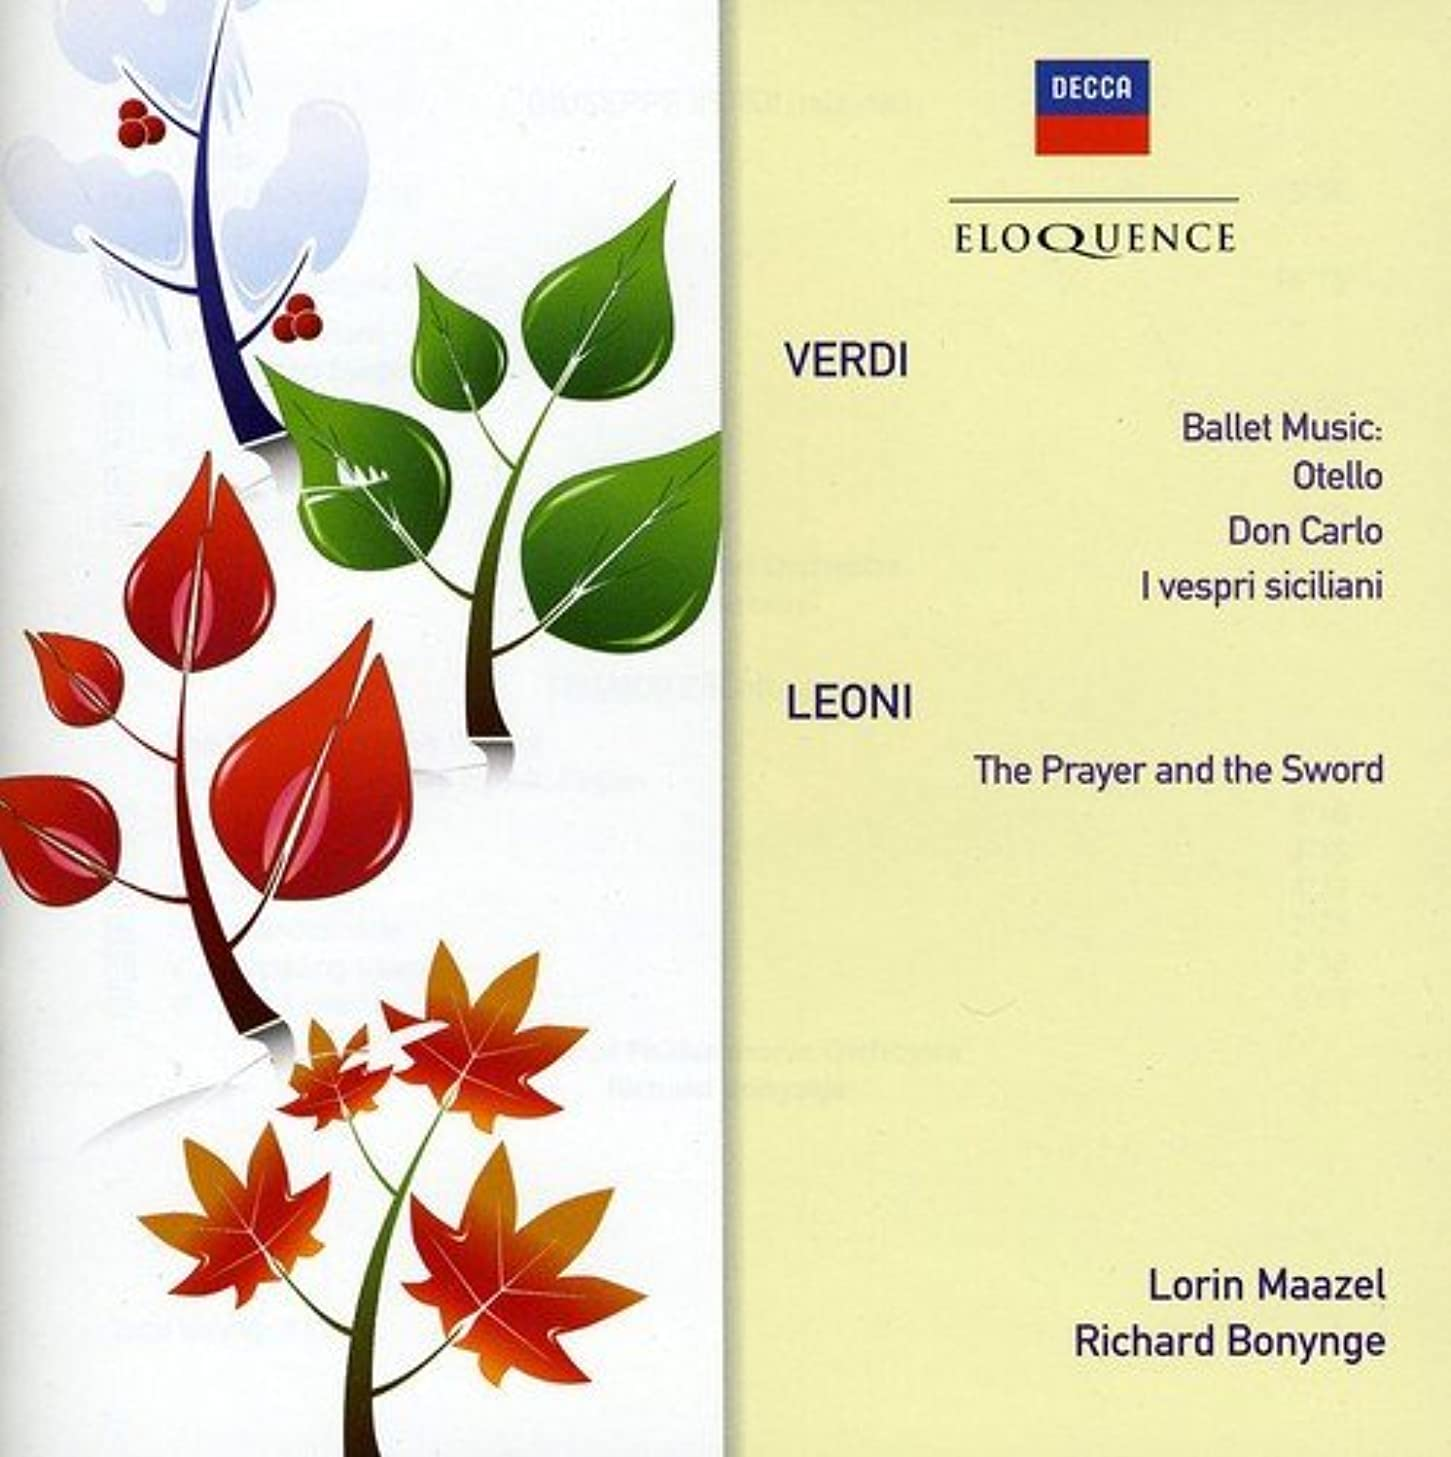 Verdi: Ballet Music from Opera / Leoni: Prayer and the Sword